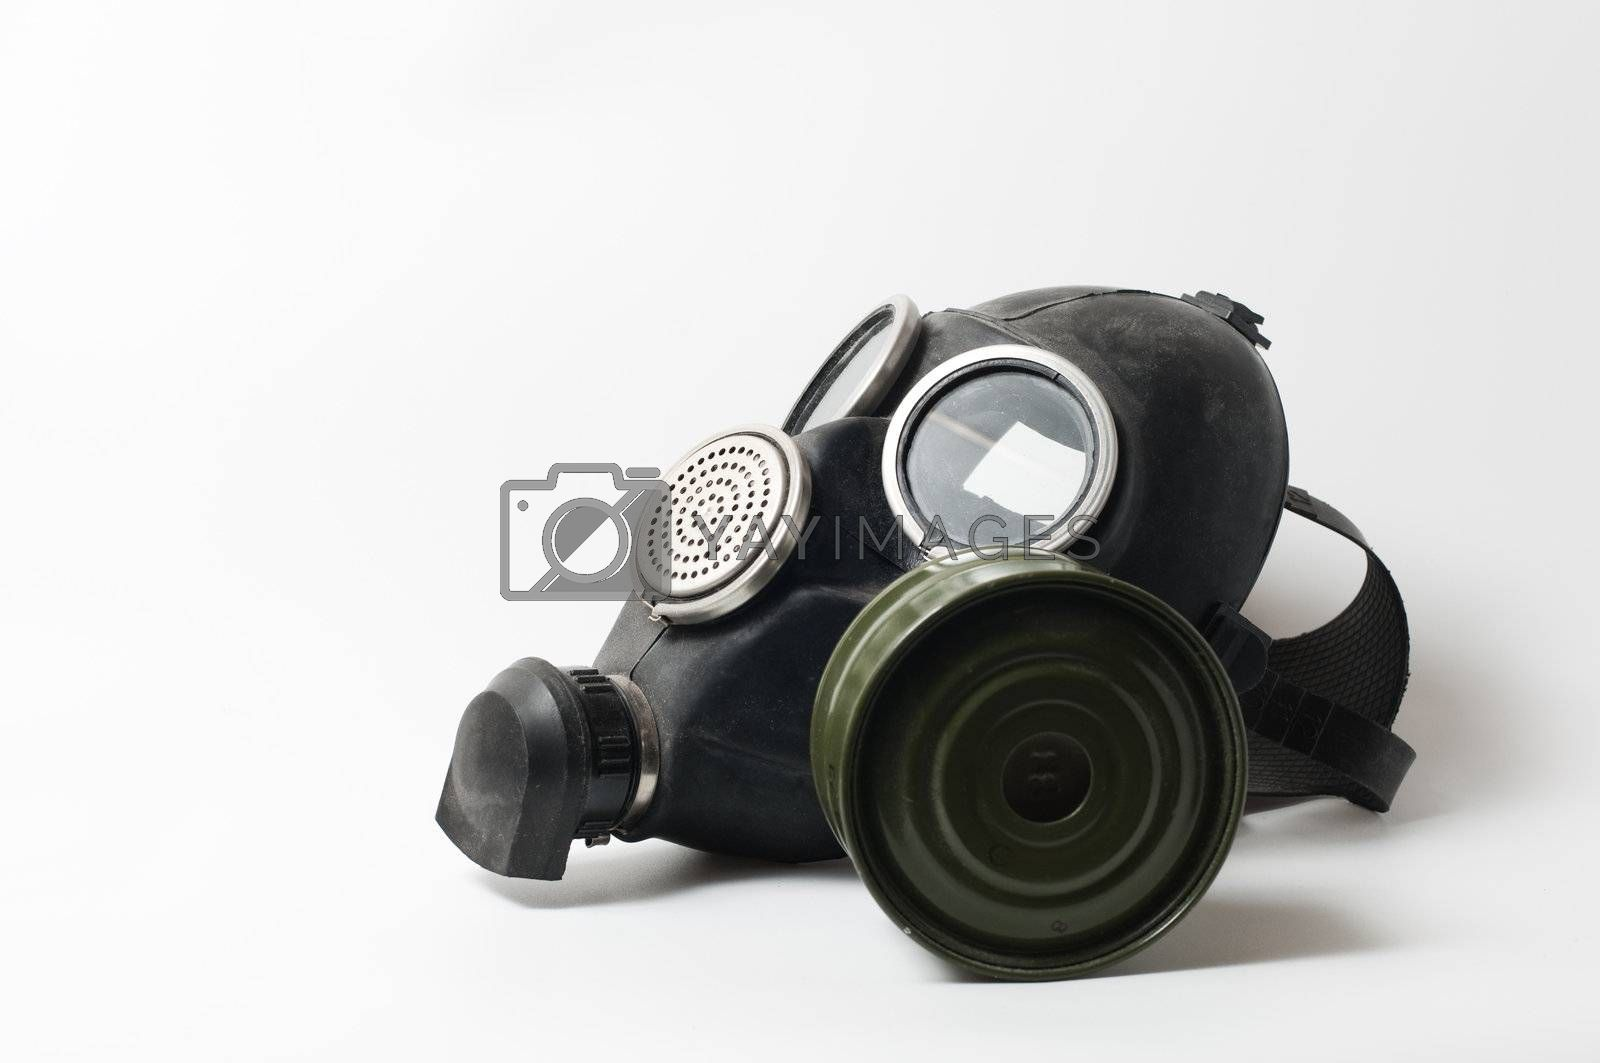 Royalty free image of gas mask by ksider